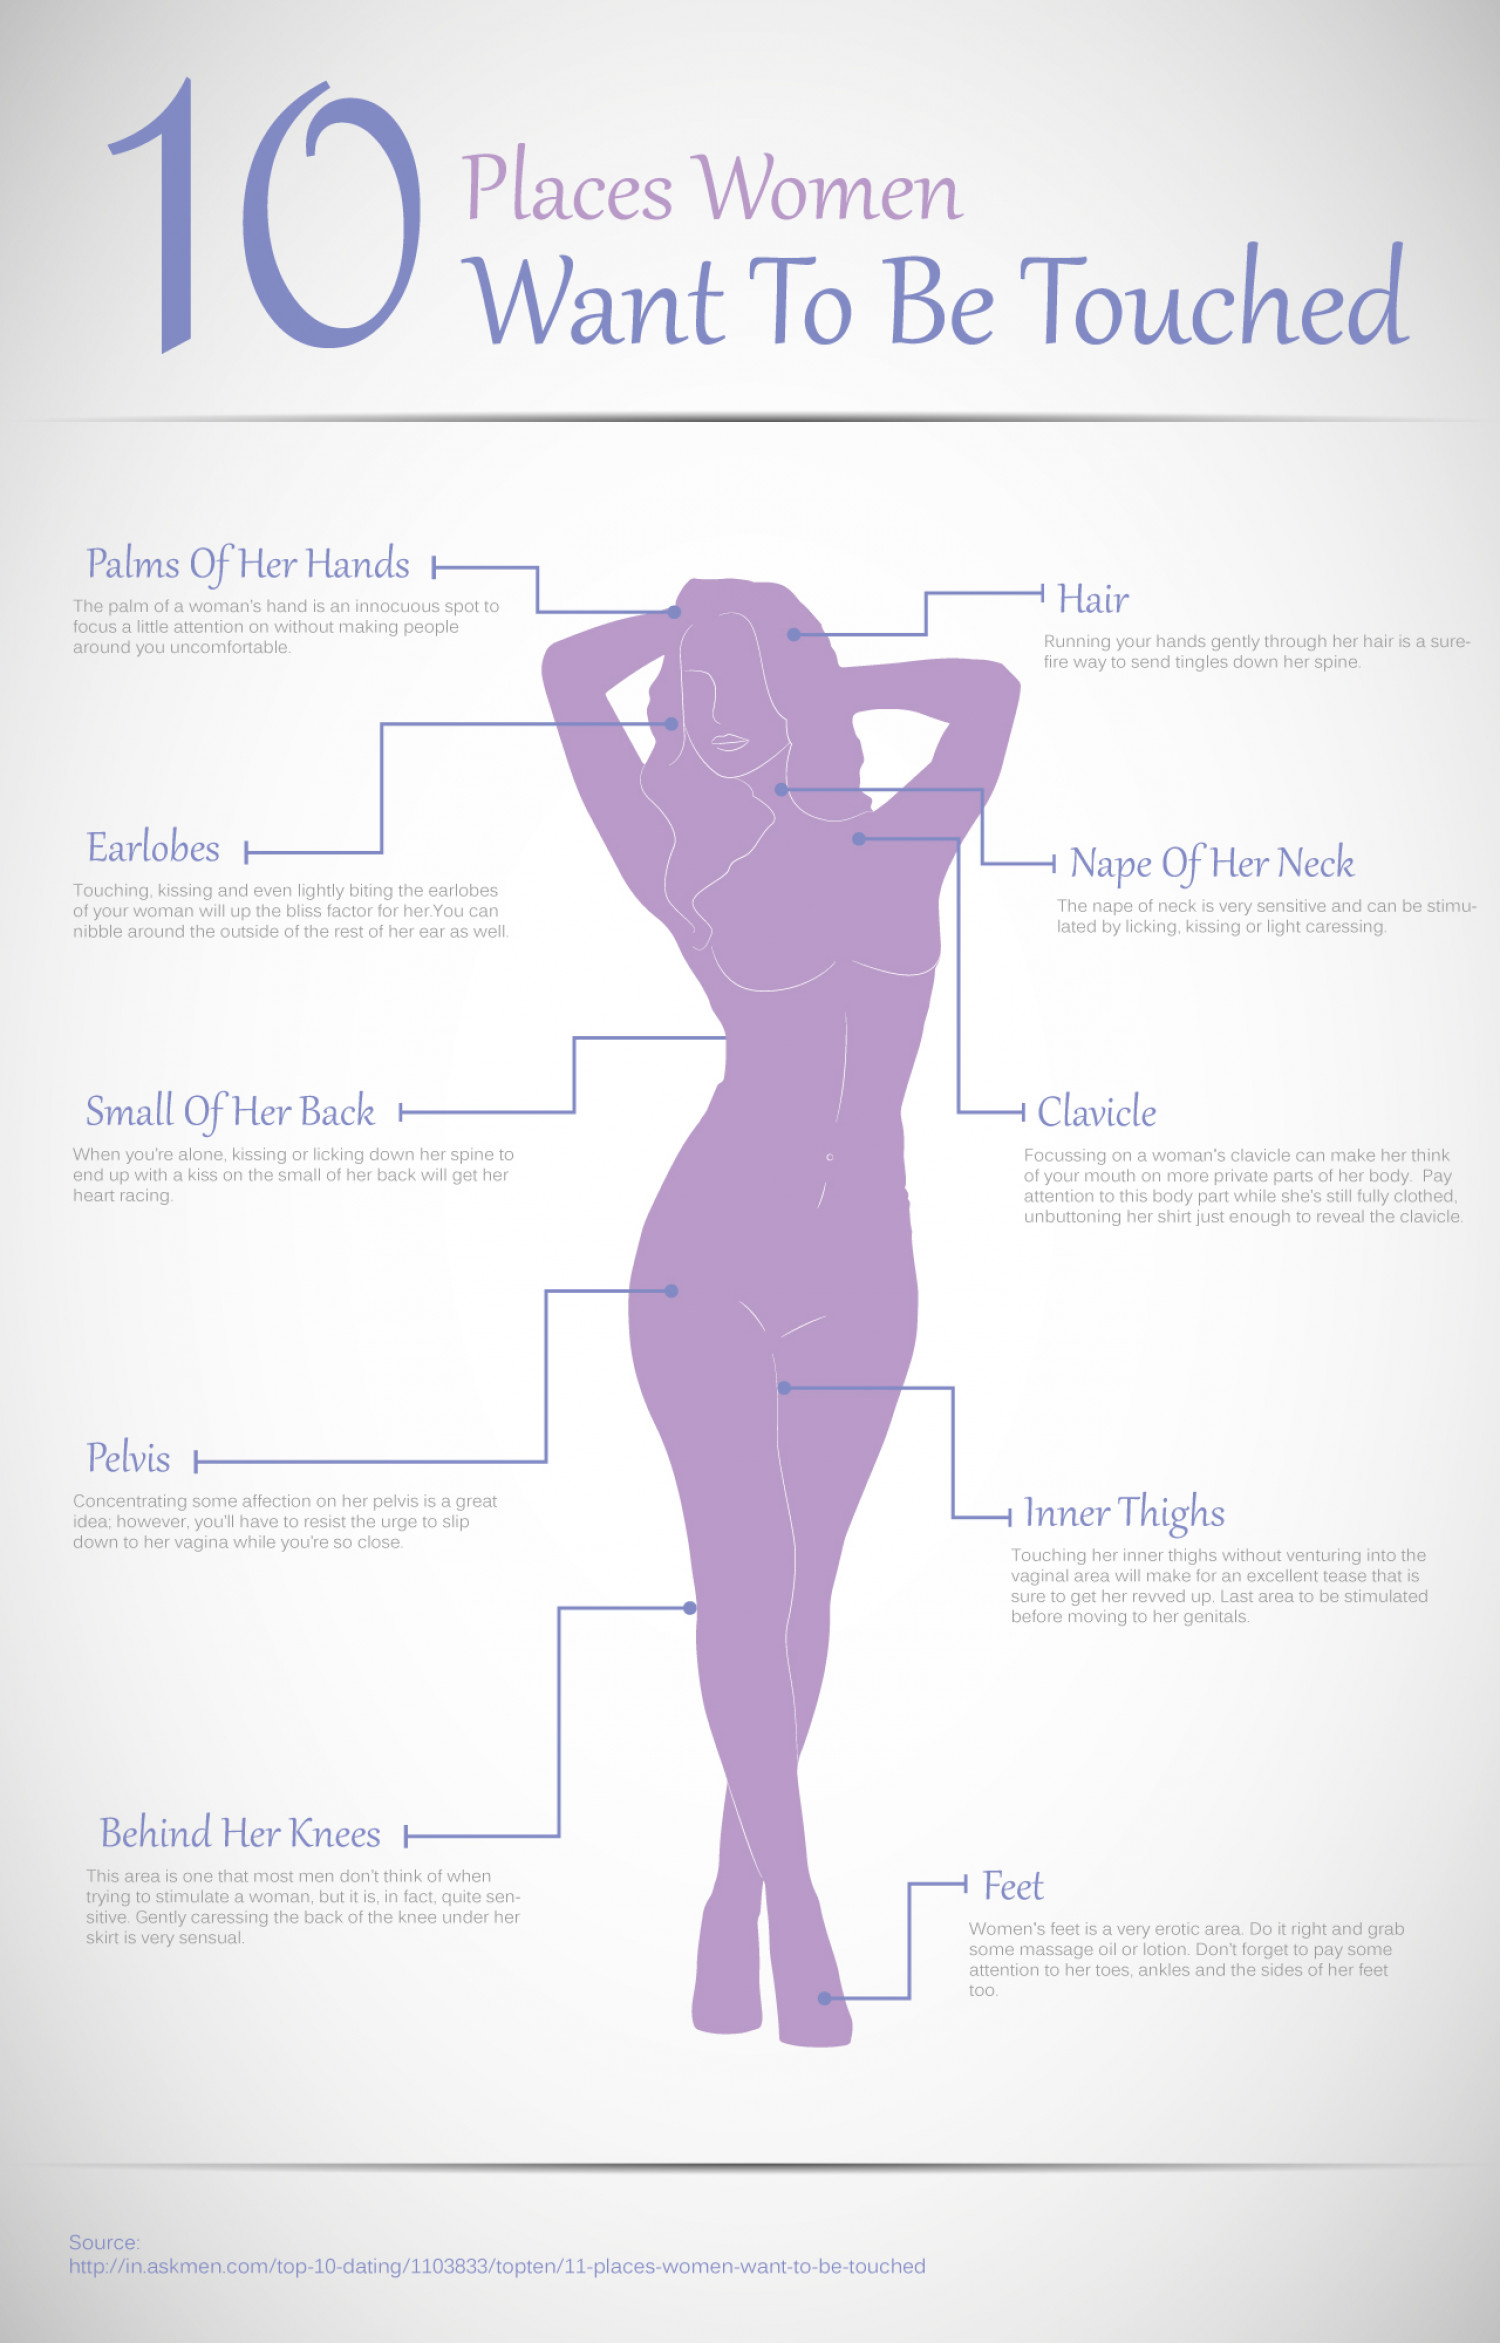 How women want to be touched